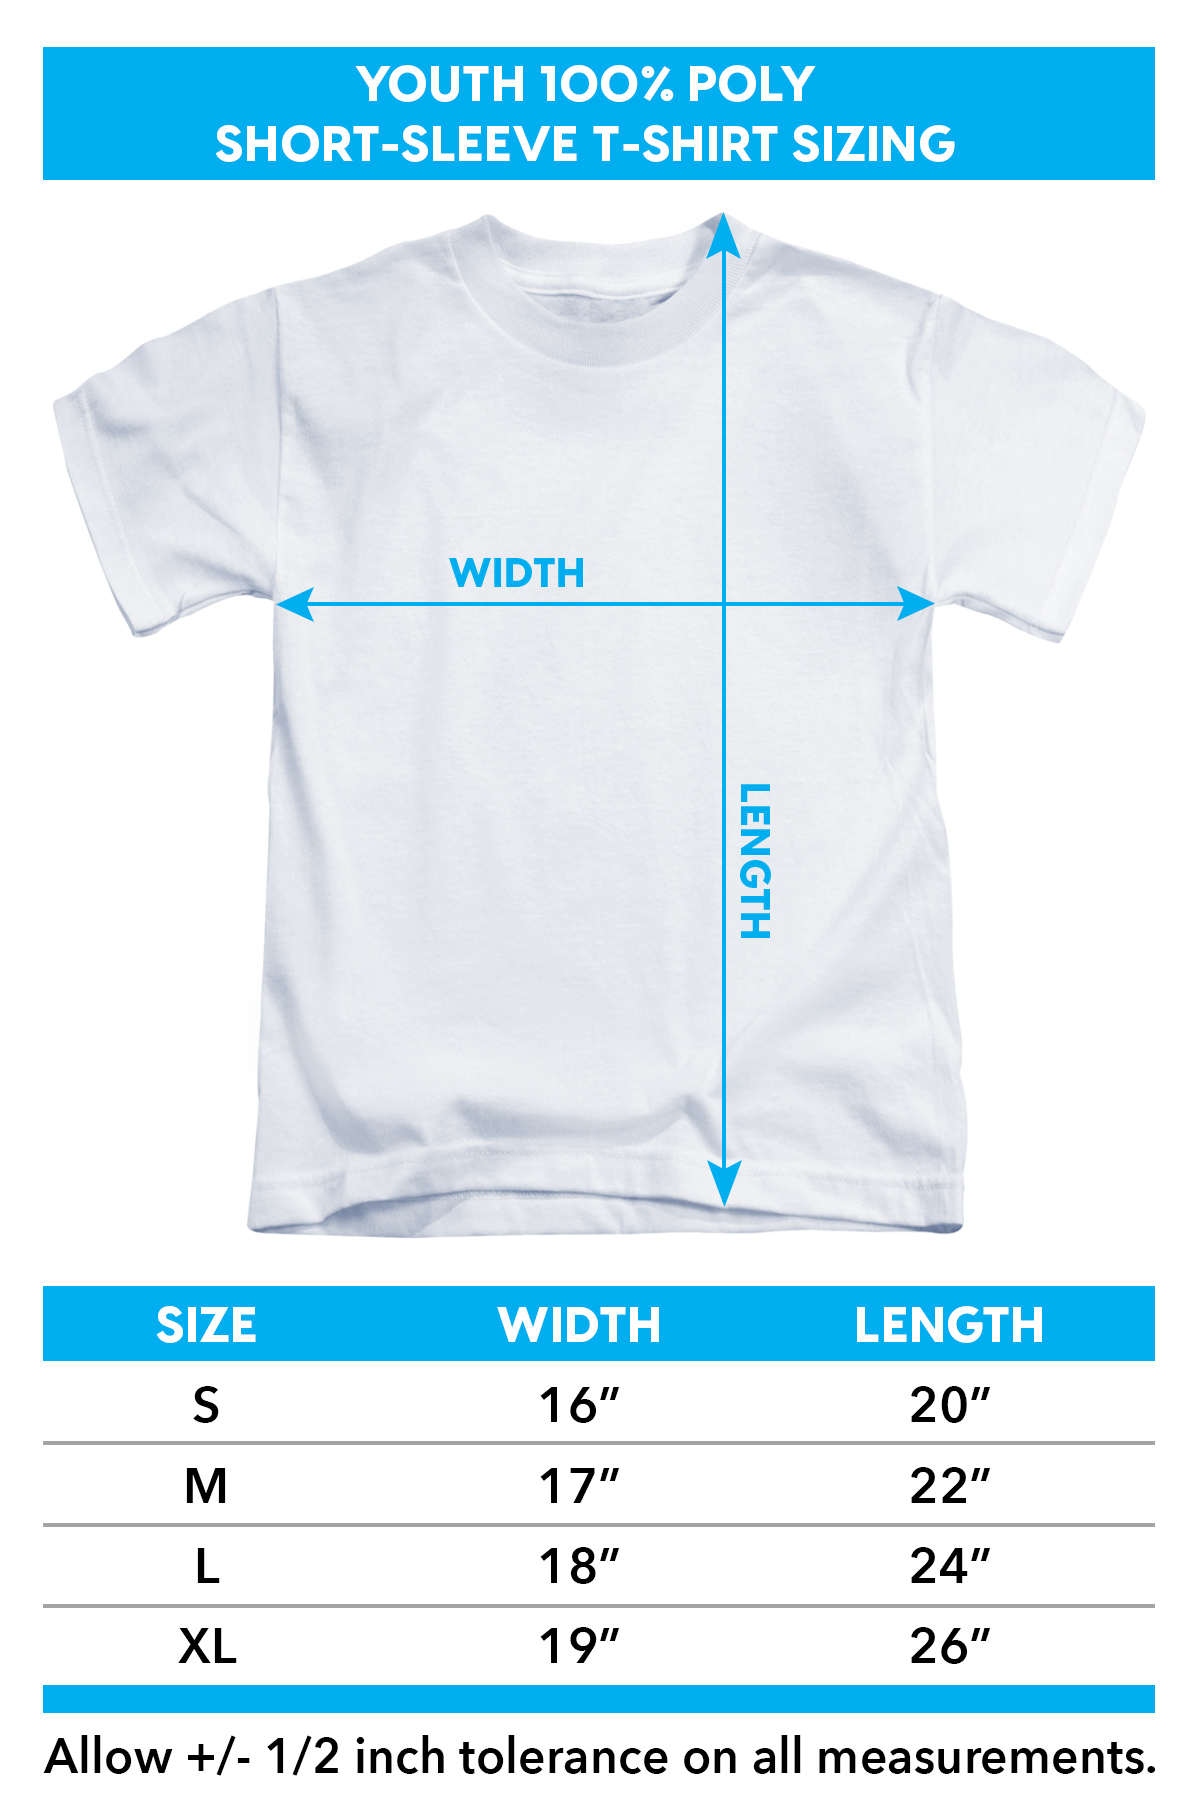 Sizing Chart for Power Rangers T-Shirt - Sublimated White Ranger Uniform